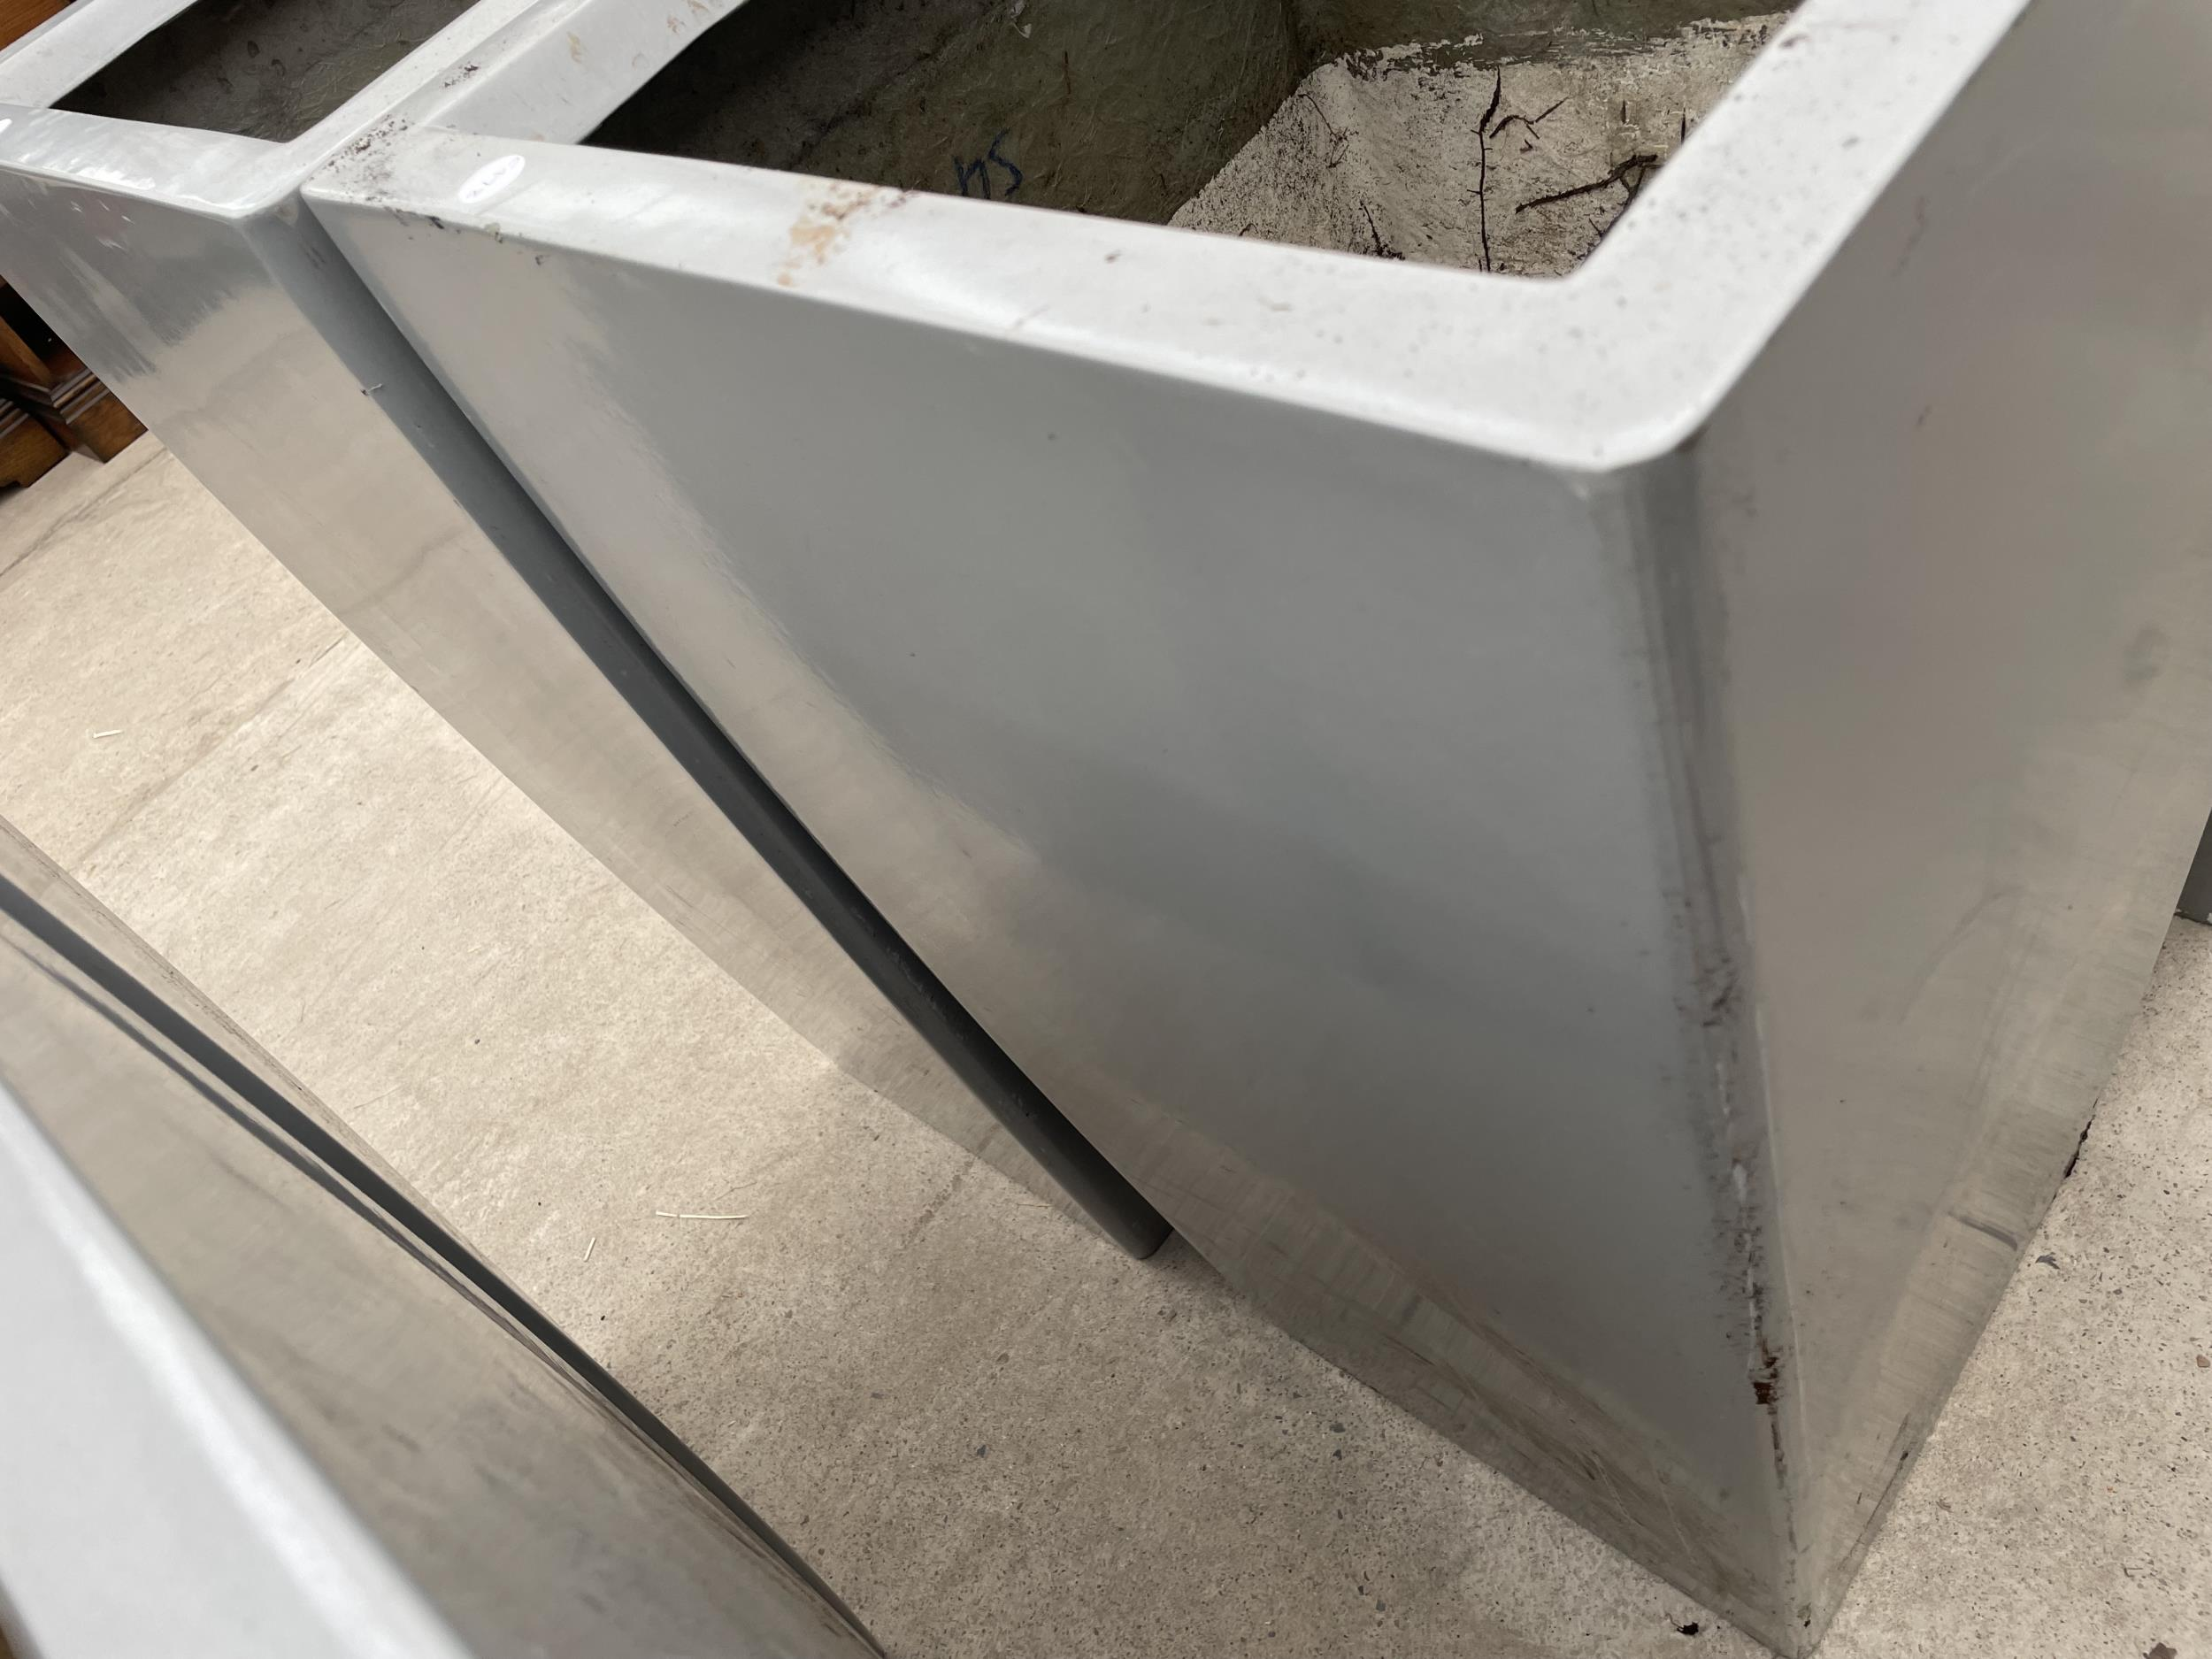 TWO LARGE GREY PLASTIC PLANTERS - Image 3 of 3